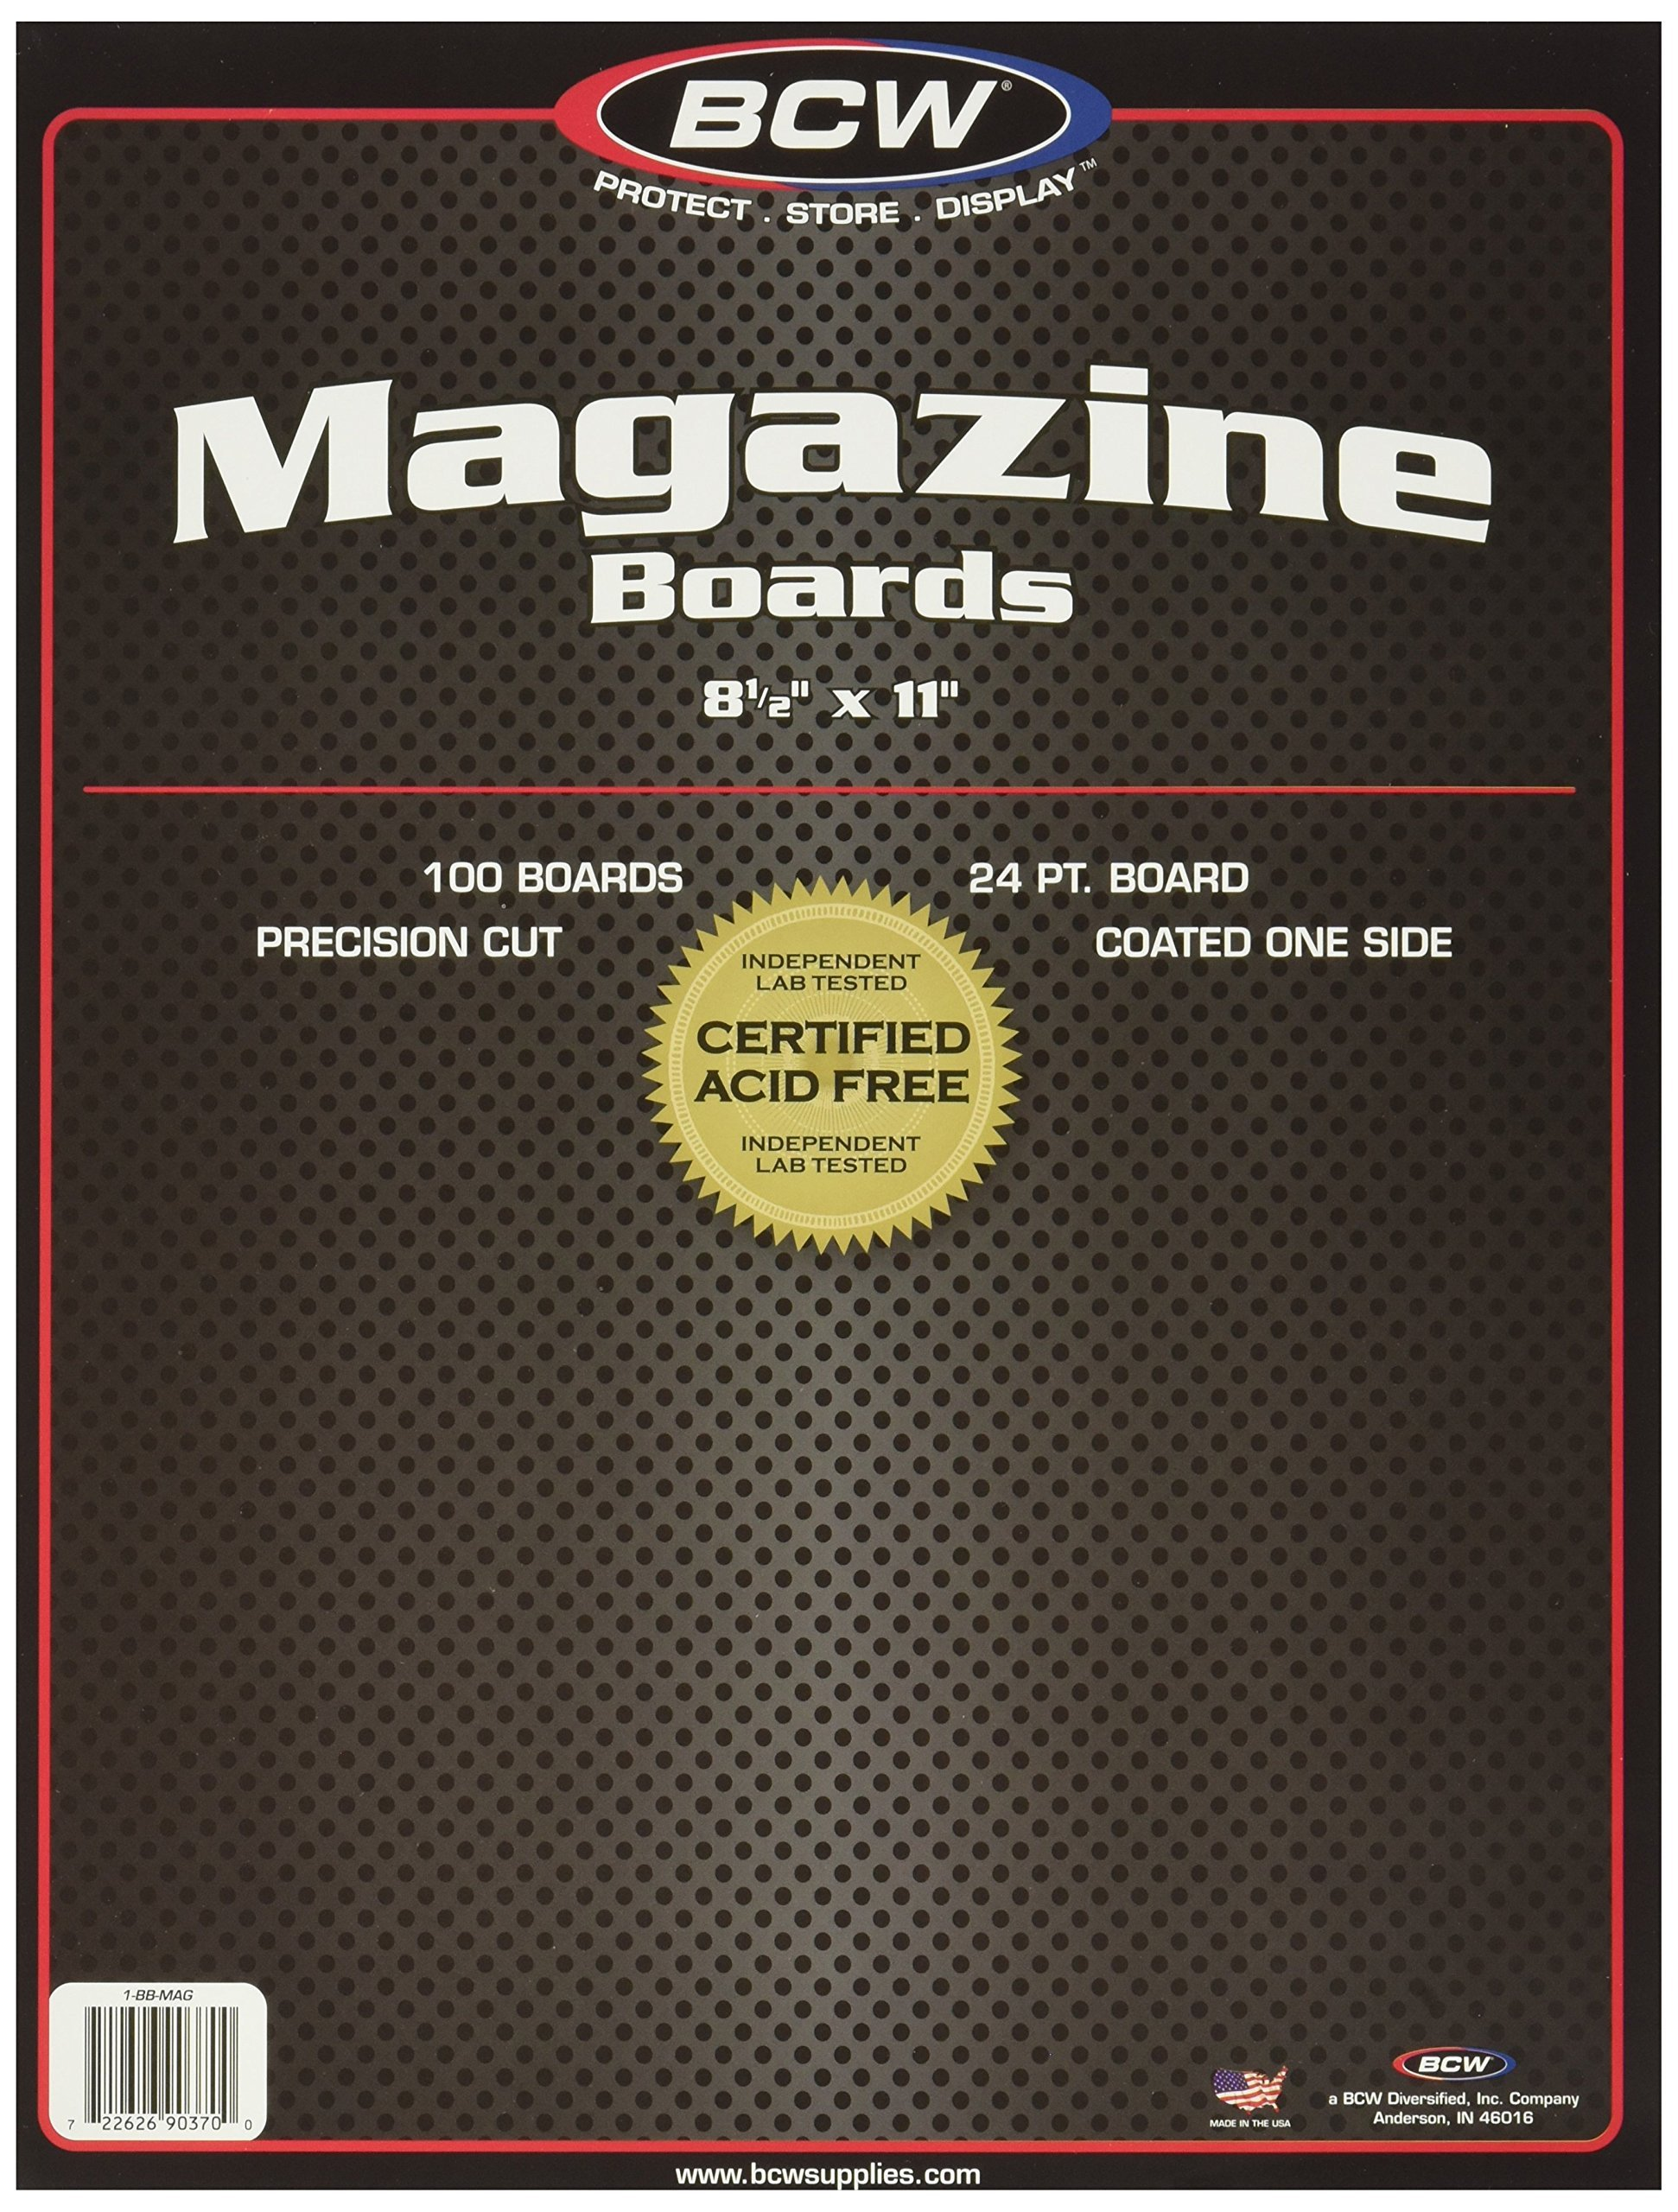 BCW-BBMAG Magazine Size Backing Boards, White (25 Boards)